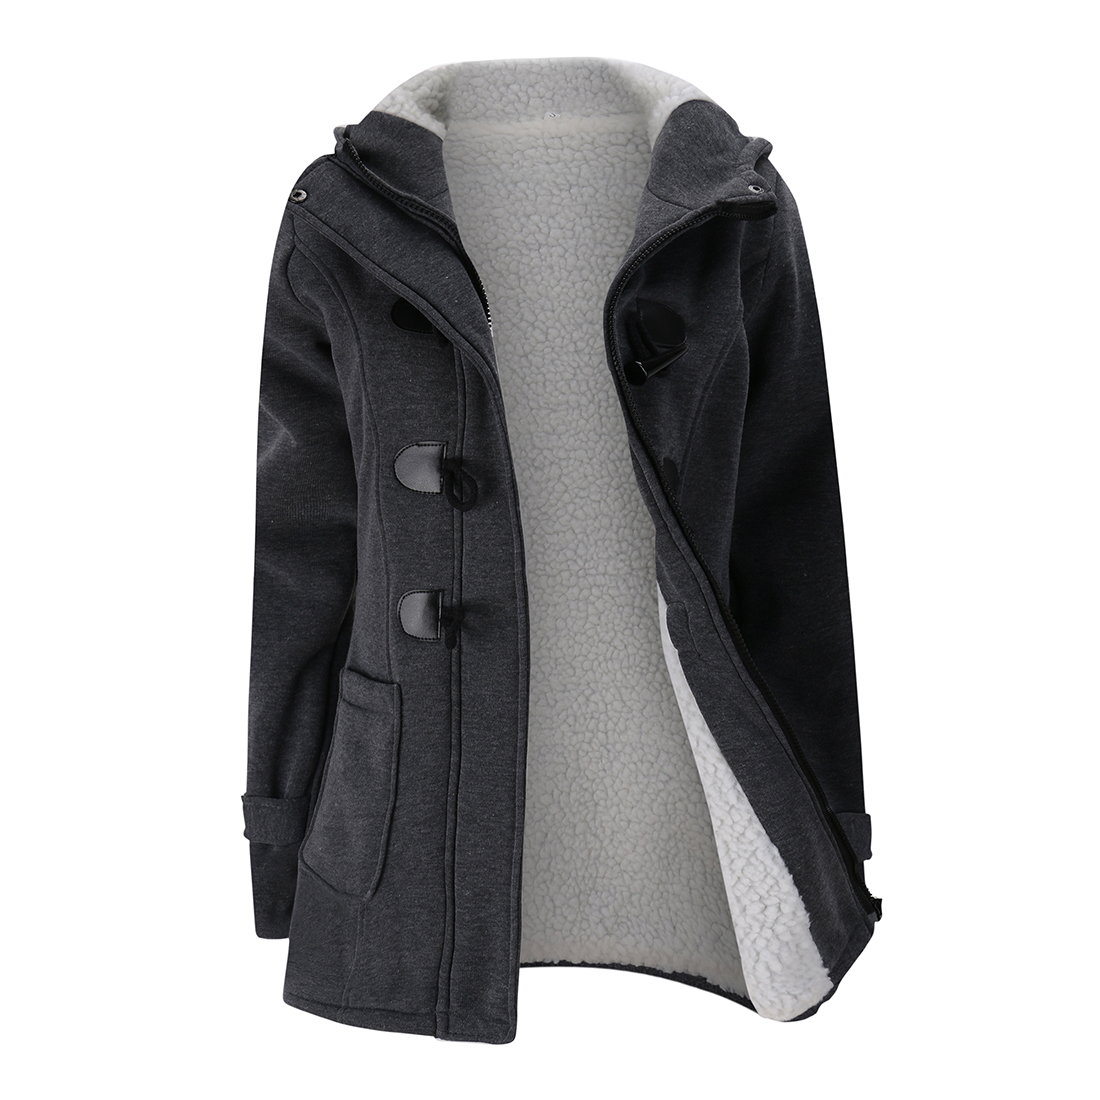 Women's Trench Coat Autumn Thick Lining Winter Jacket Overcoat Long Hooded Zipper